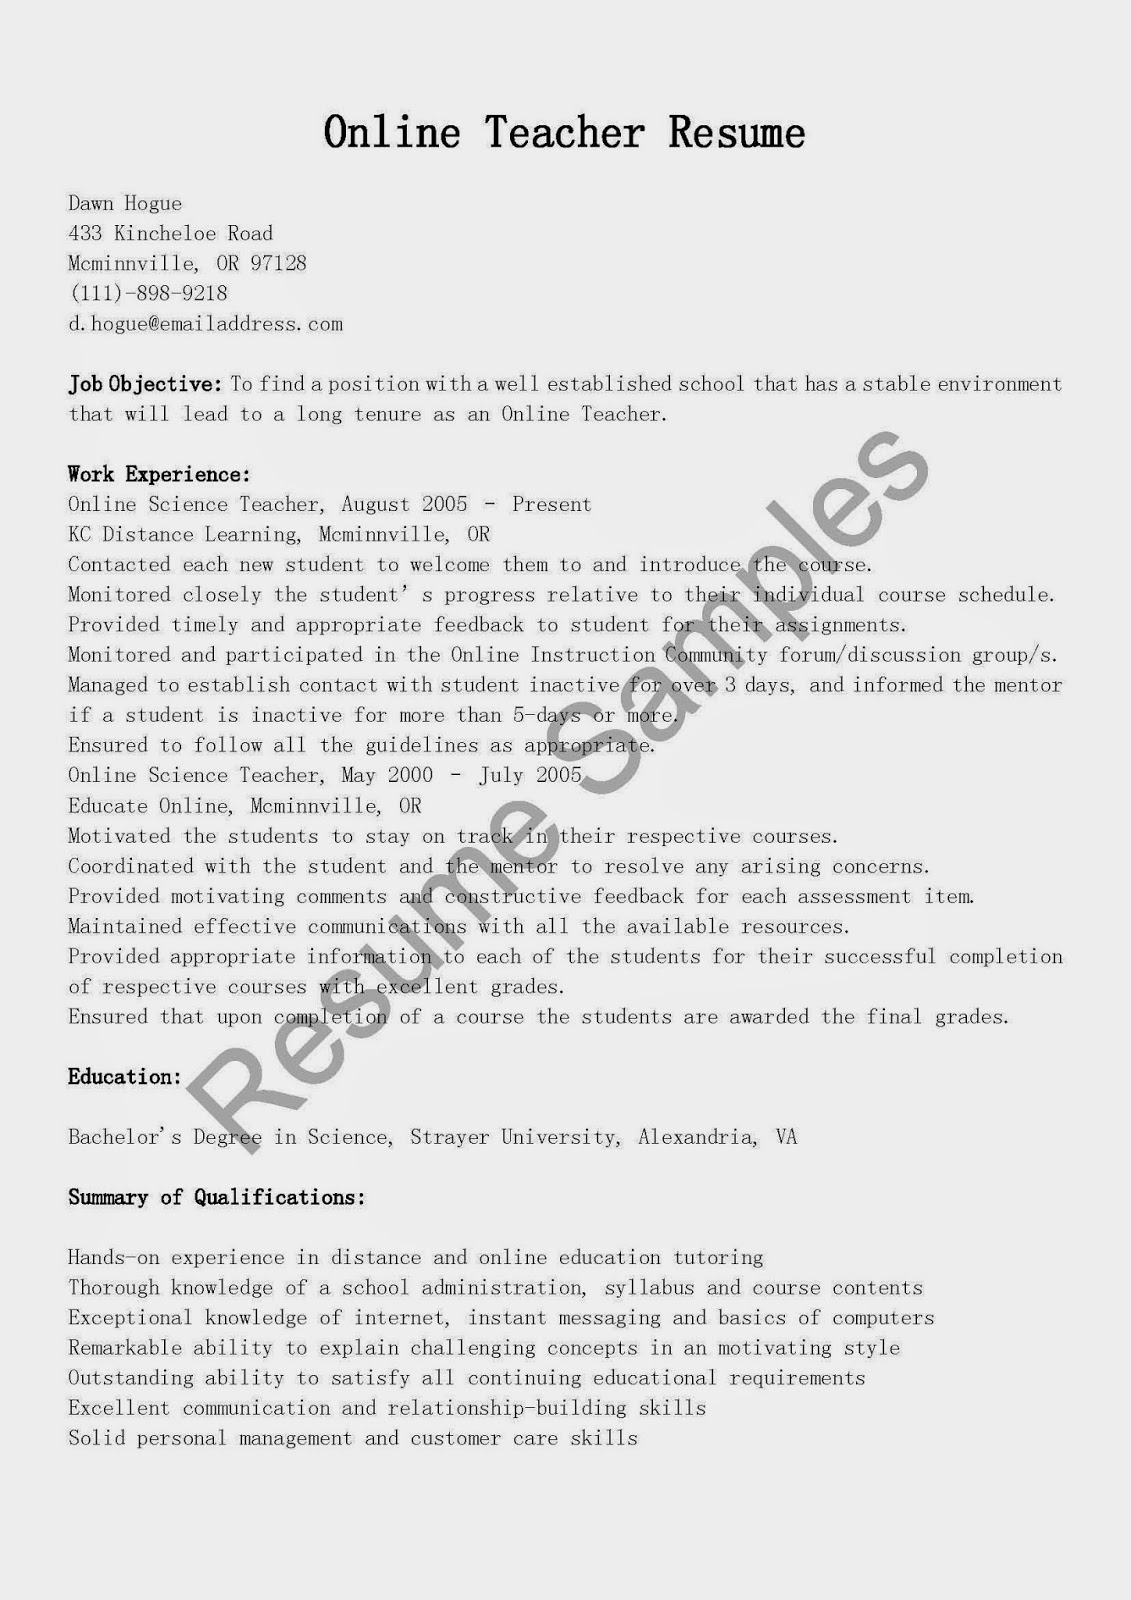 resume samples online teacher resume sample - Resume Samples Online Free